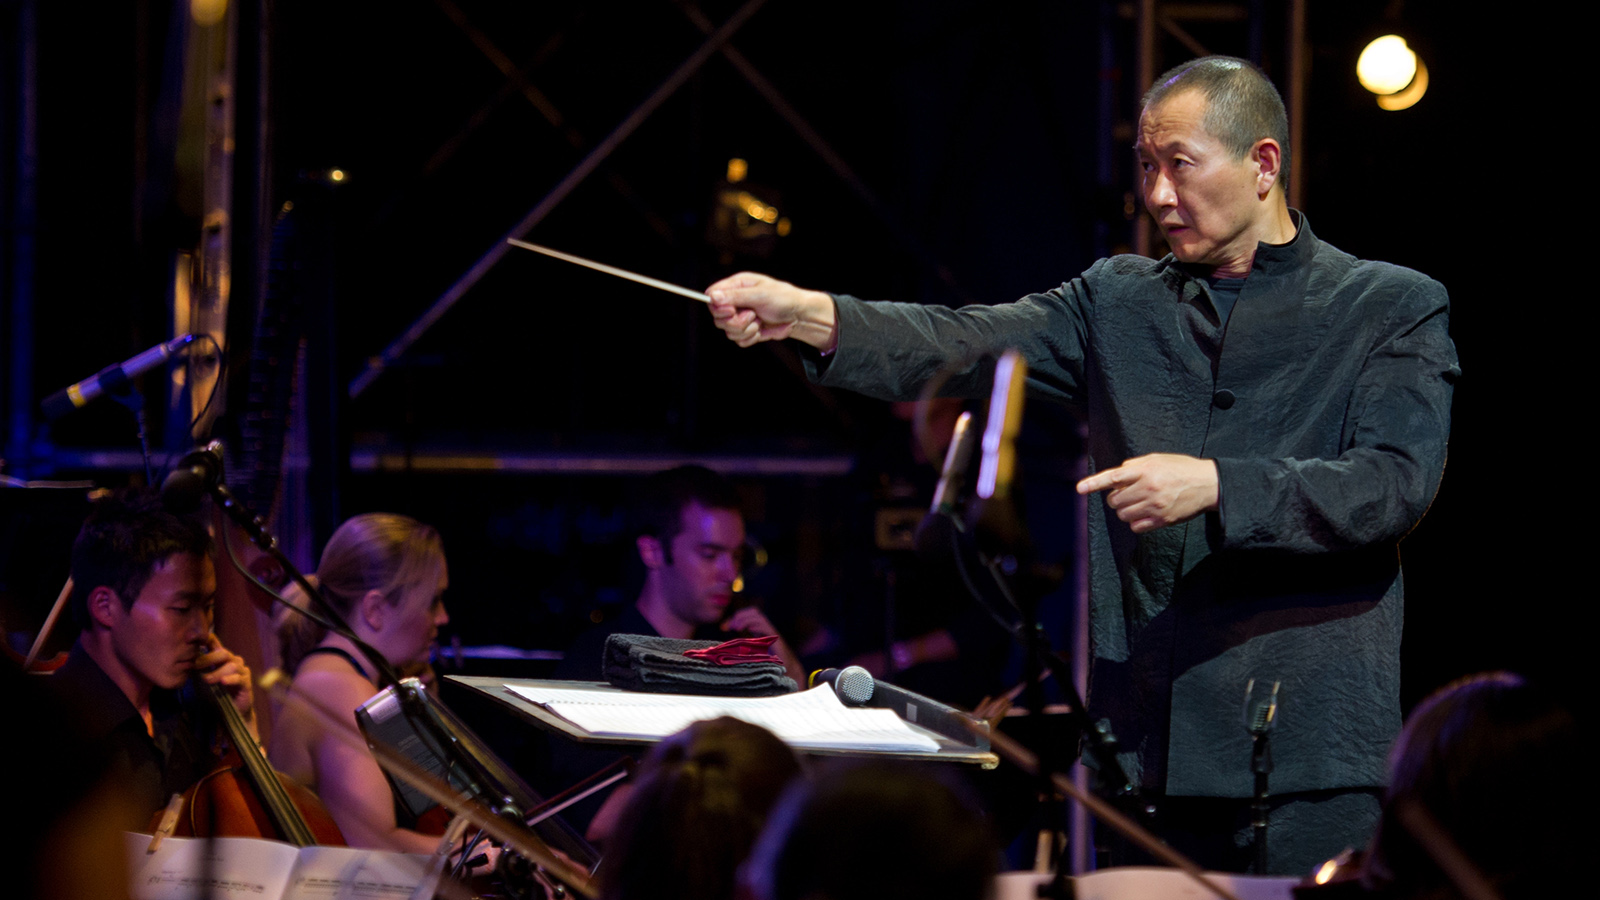 [Lecture: Conservatory Dean and Composer Tan Dun speaking on Music and Film] Photo by Tomasz Wiech